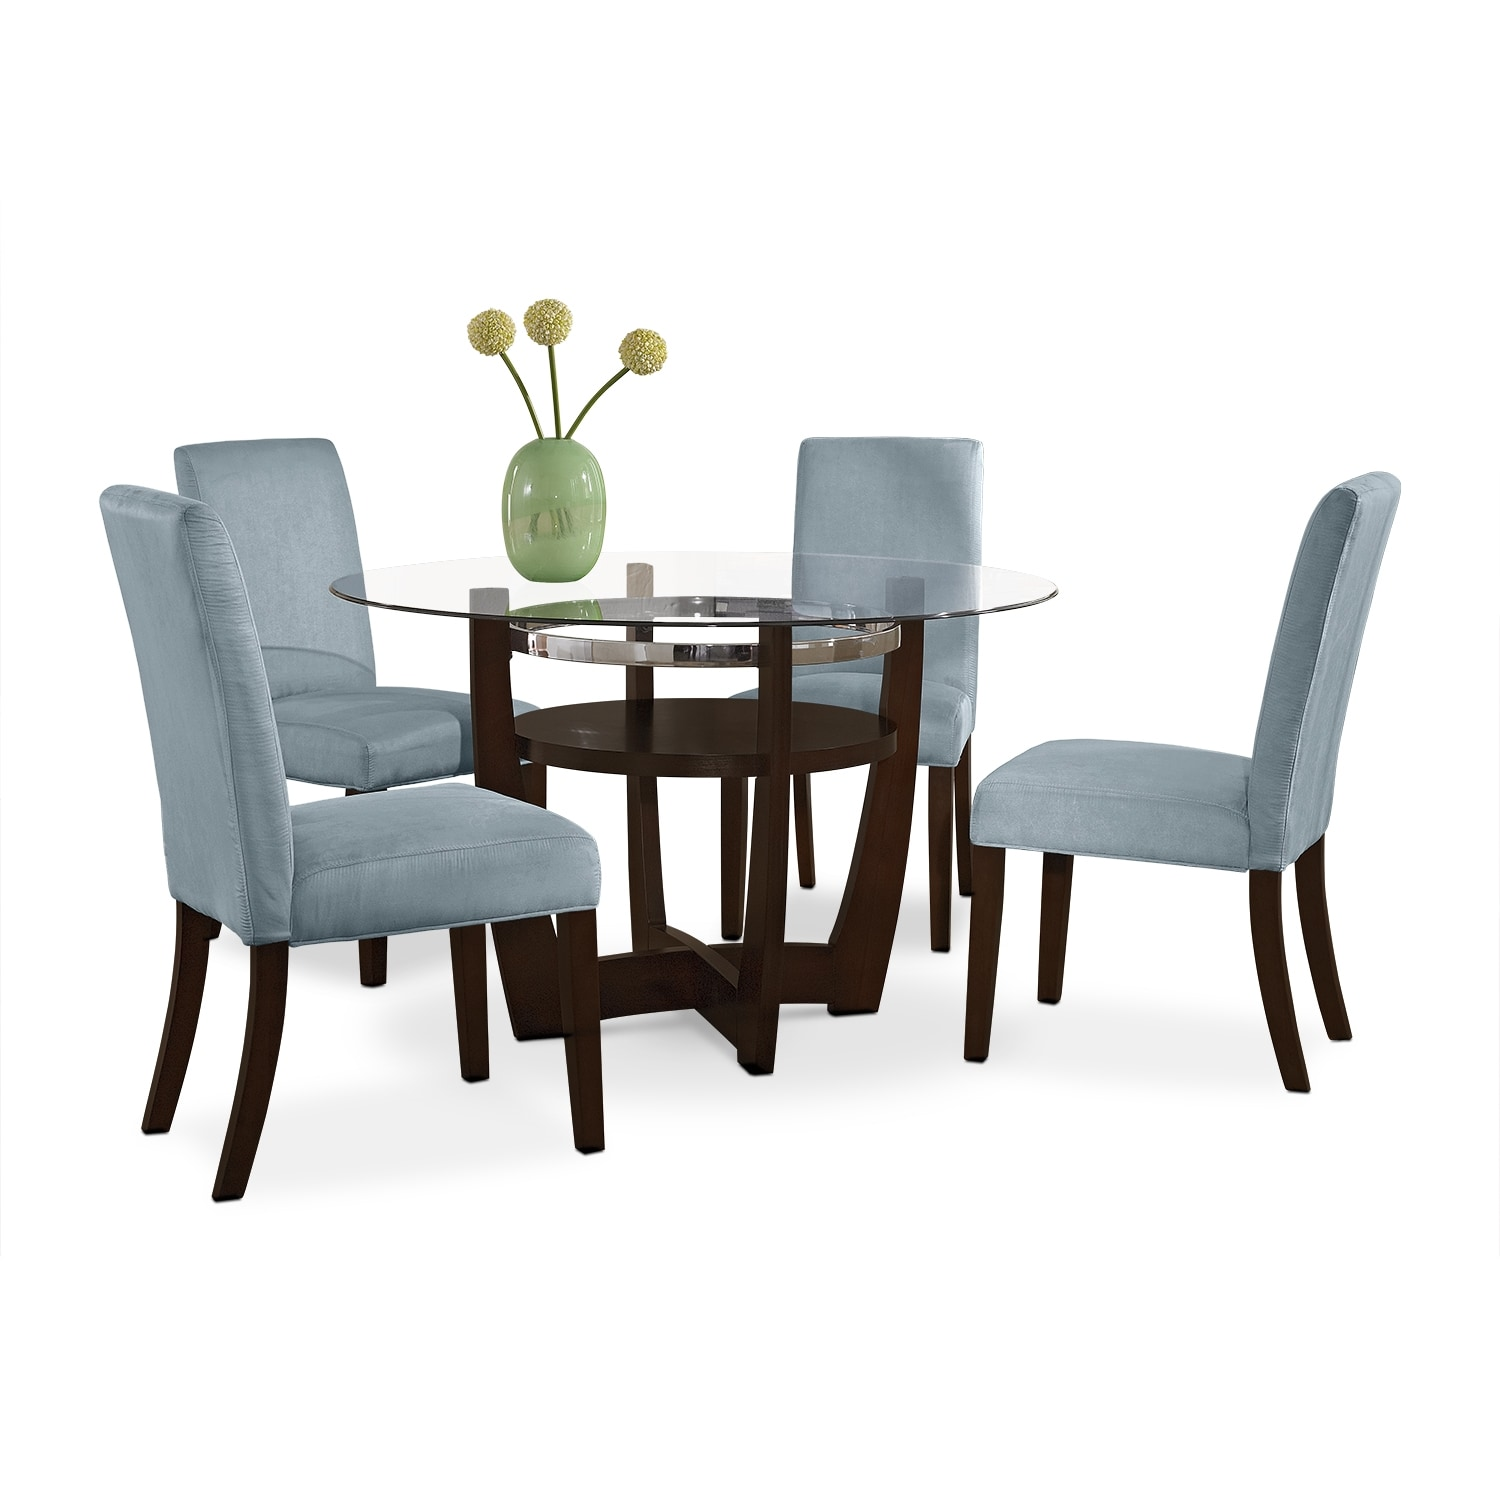 Furnishings for every room online and store furniture for Dinette sets with bench seating